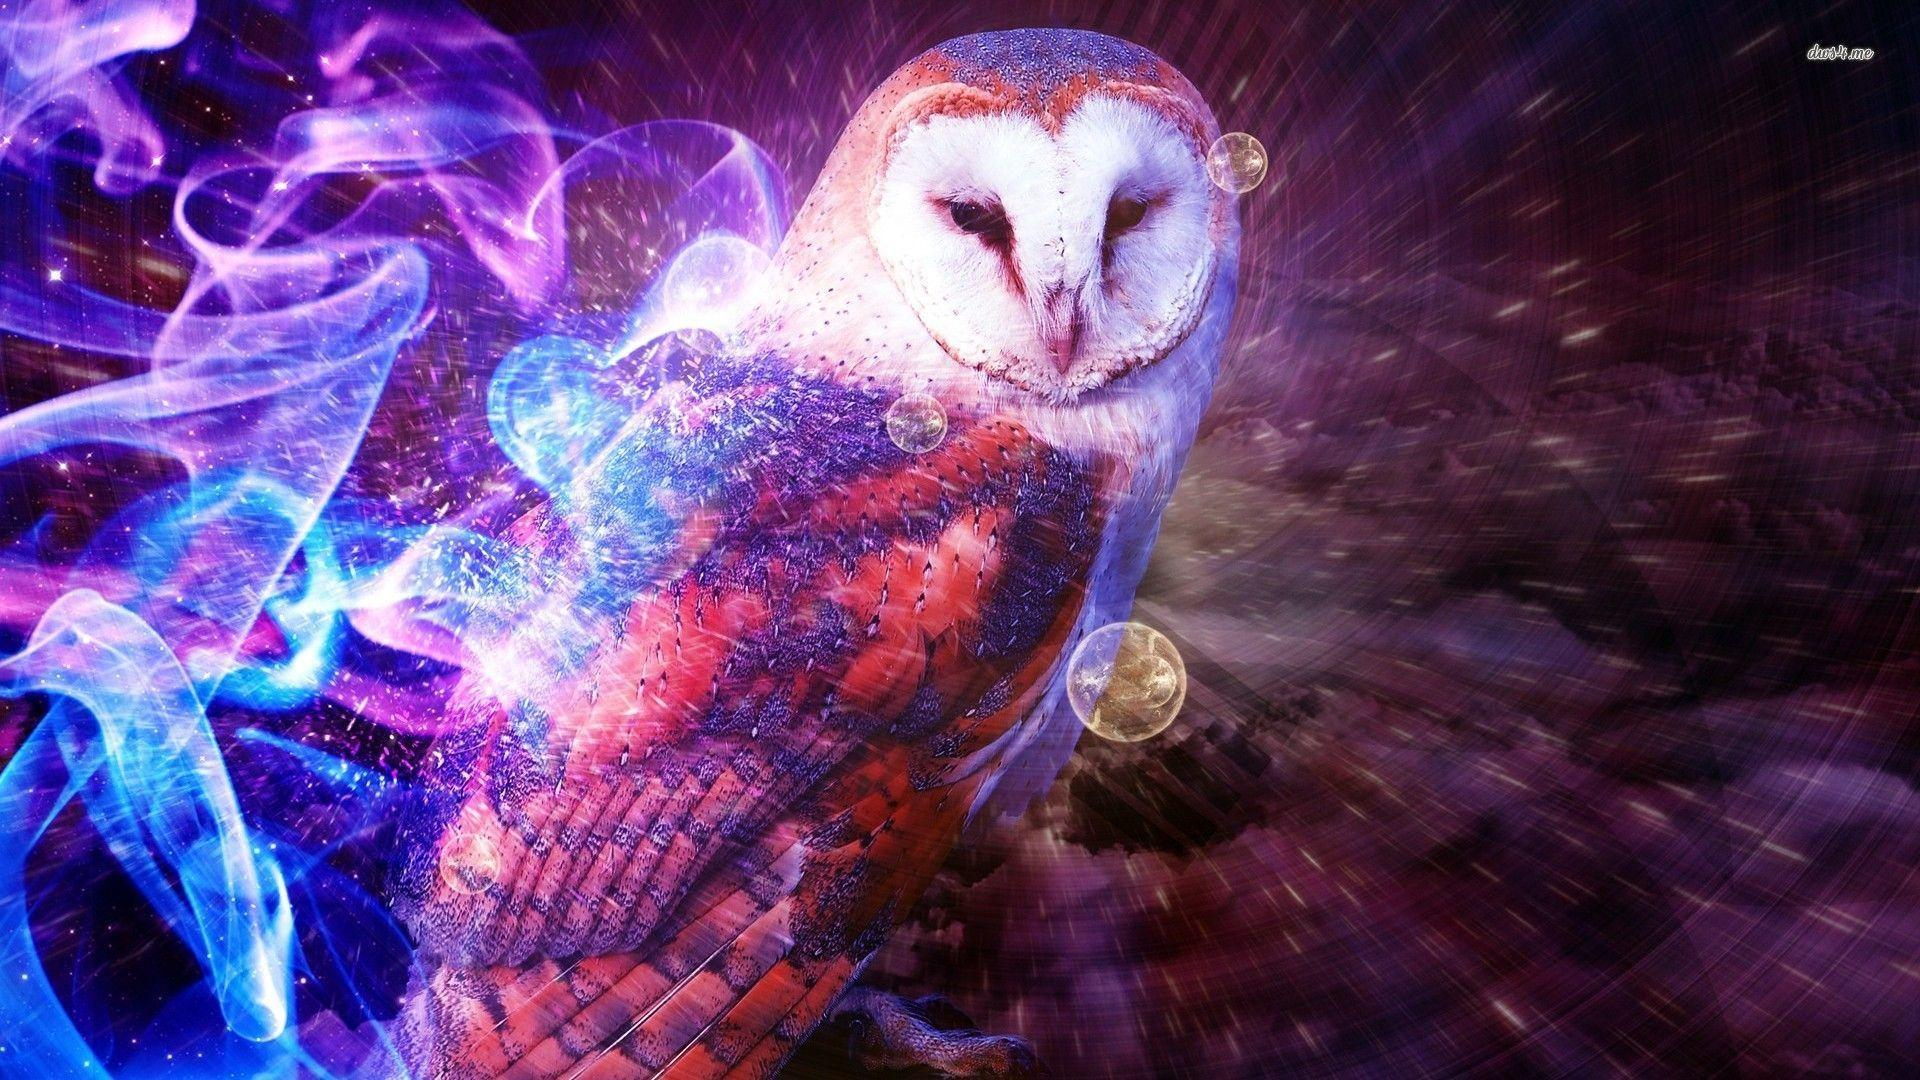 owl wallpaper desktop 7 - photo #32